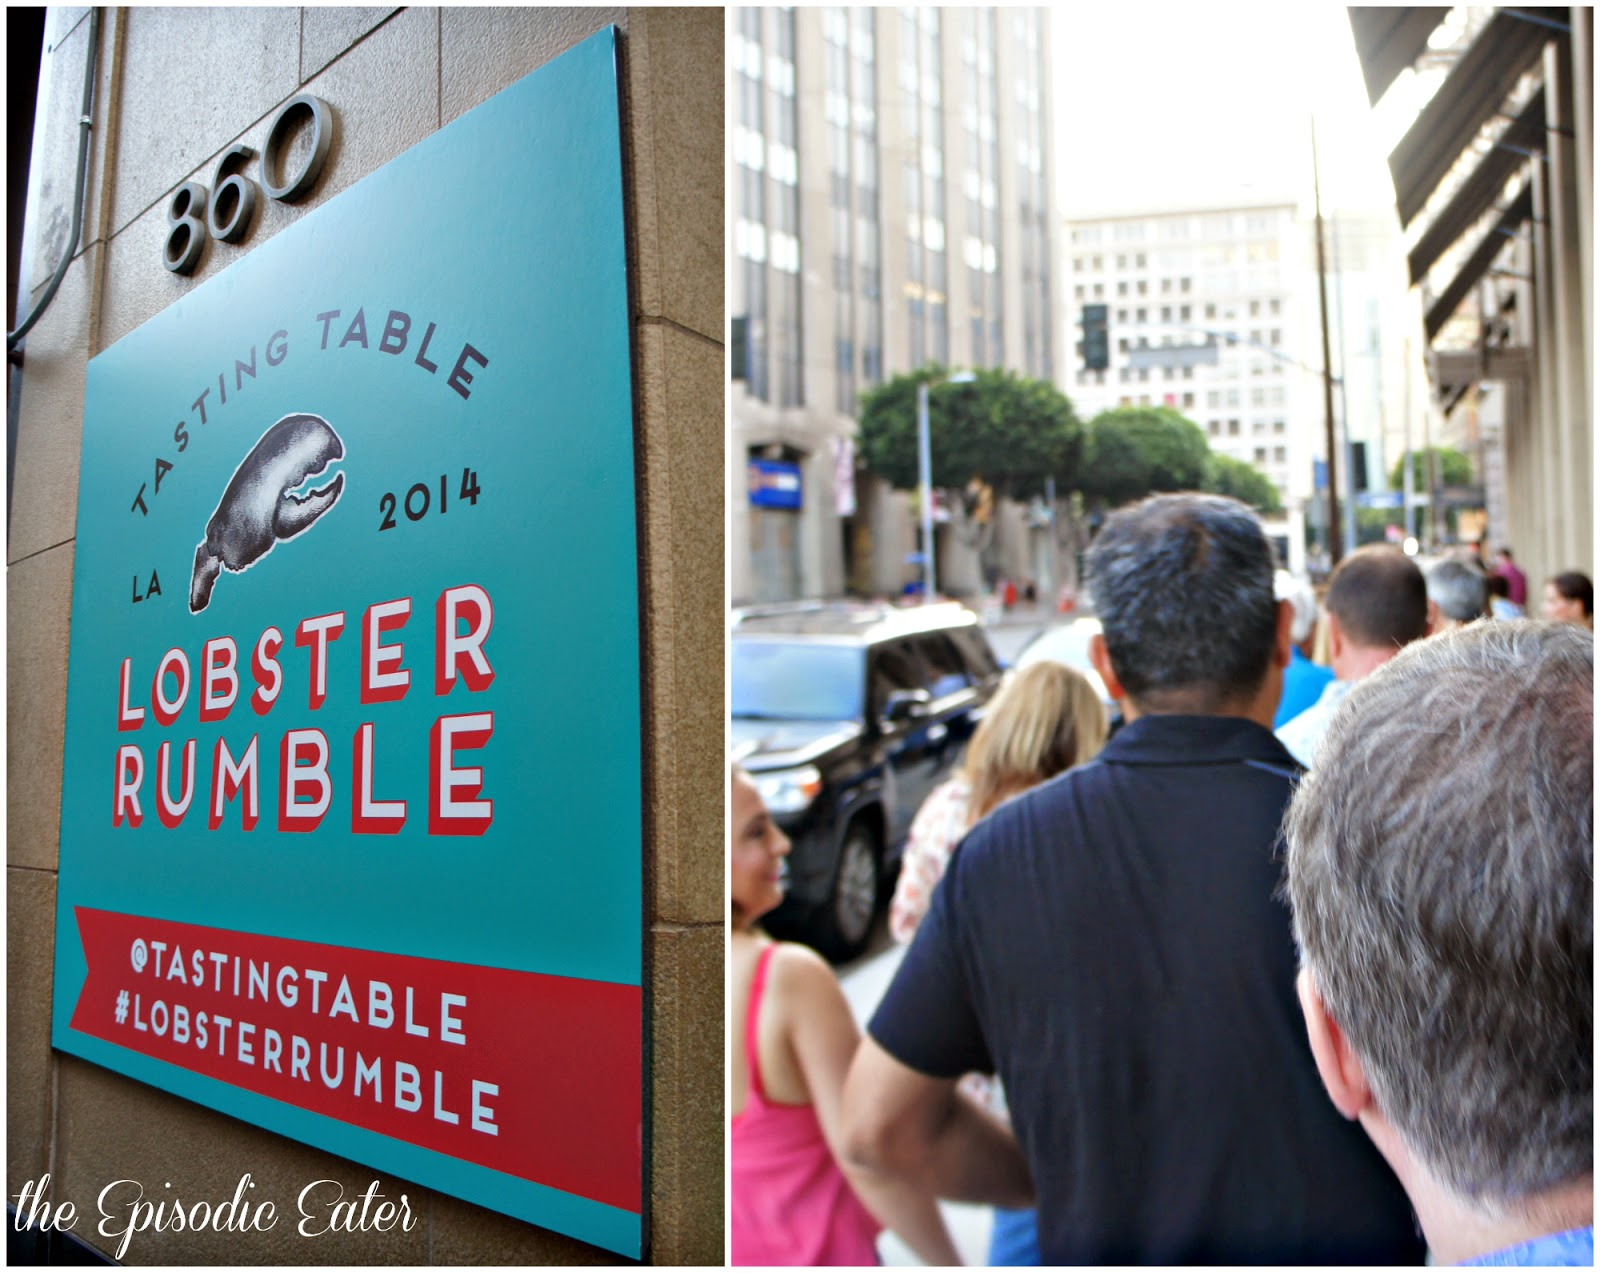 Lobster Roll Rumble 2014 (Los Angeles, CA) on The Episodic Eater